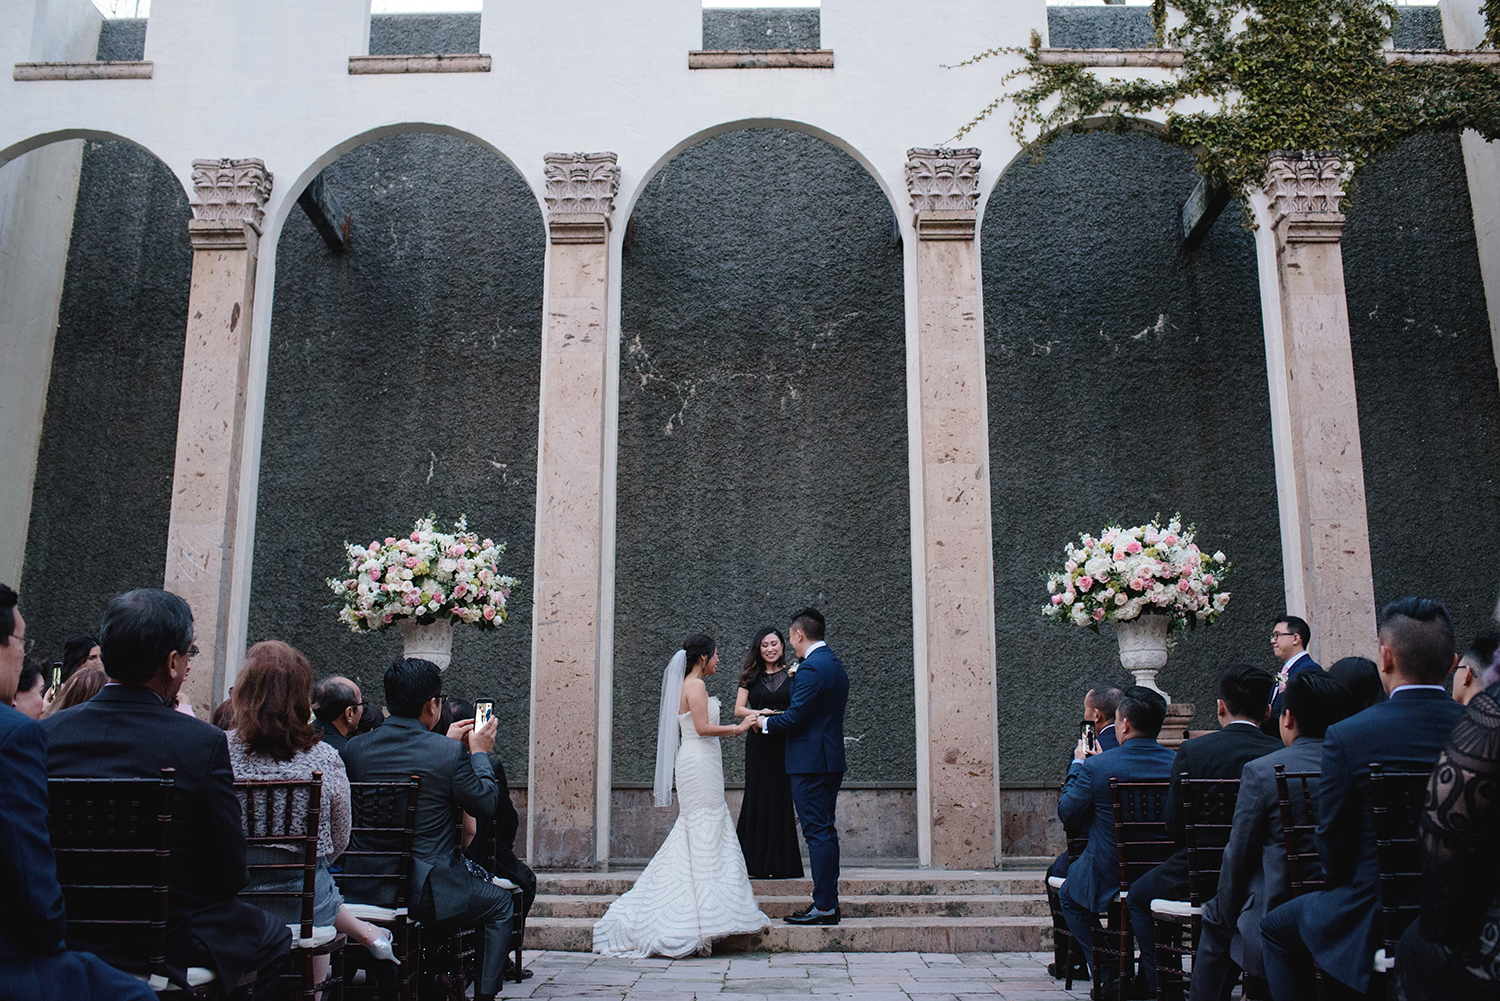 water wall - houston wedding ceremony backdrop